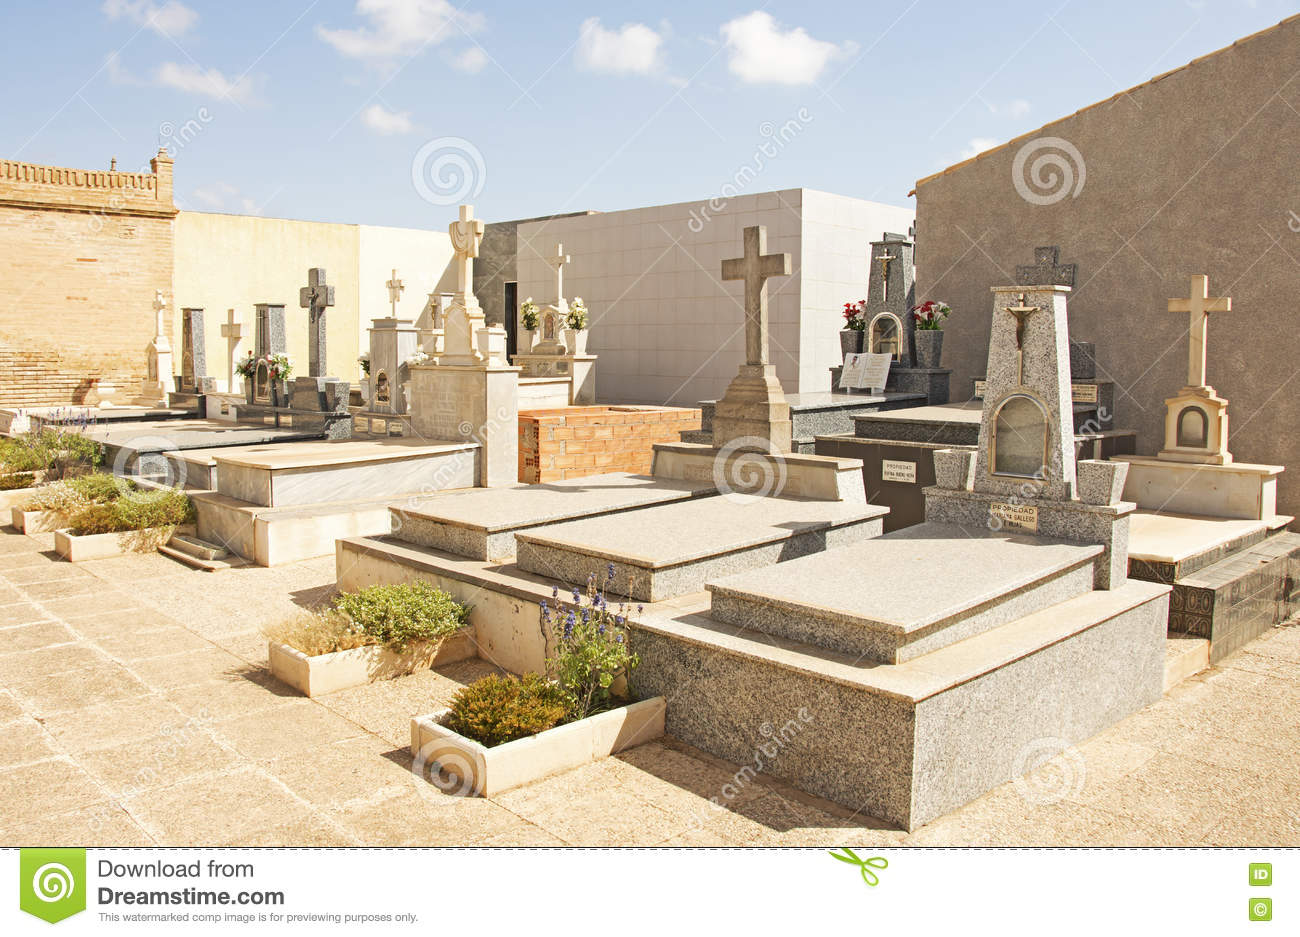 Cemetary in Spain